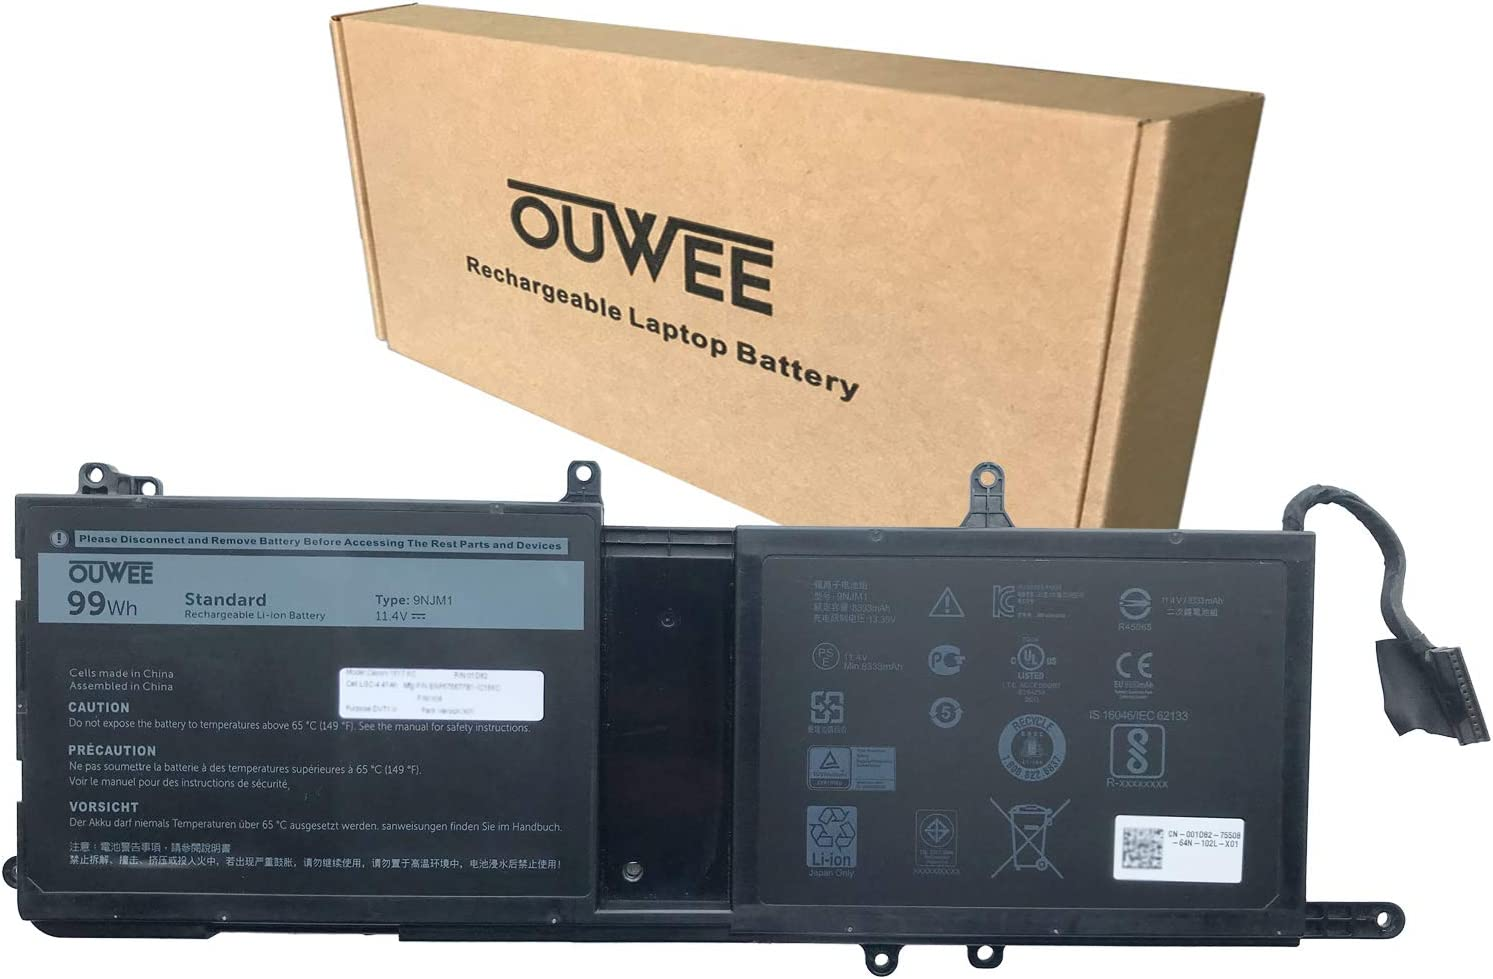 OUWEE 9NJM1 Laptop Battery Compatible with Dell Alienware 15 R3 R4 17 R4 R5 Series Notebook 0546FF 0HF250 44T2R HF250 MG2YH 0MG2YH 11.4V 99Wh 8820mAh